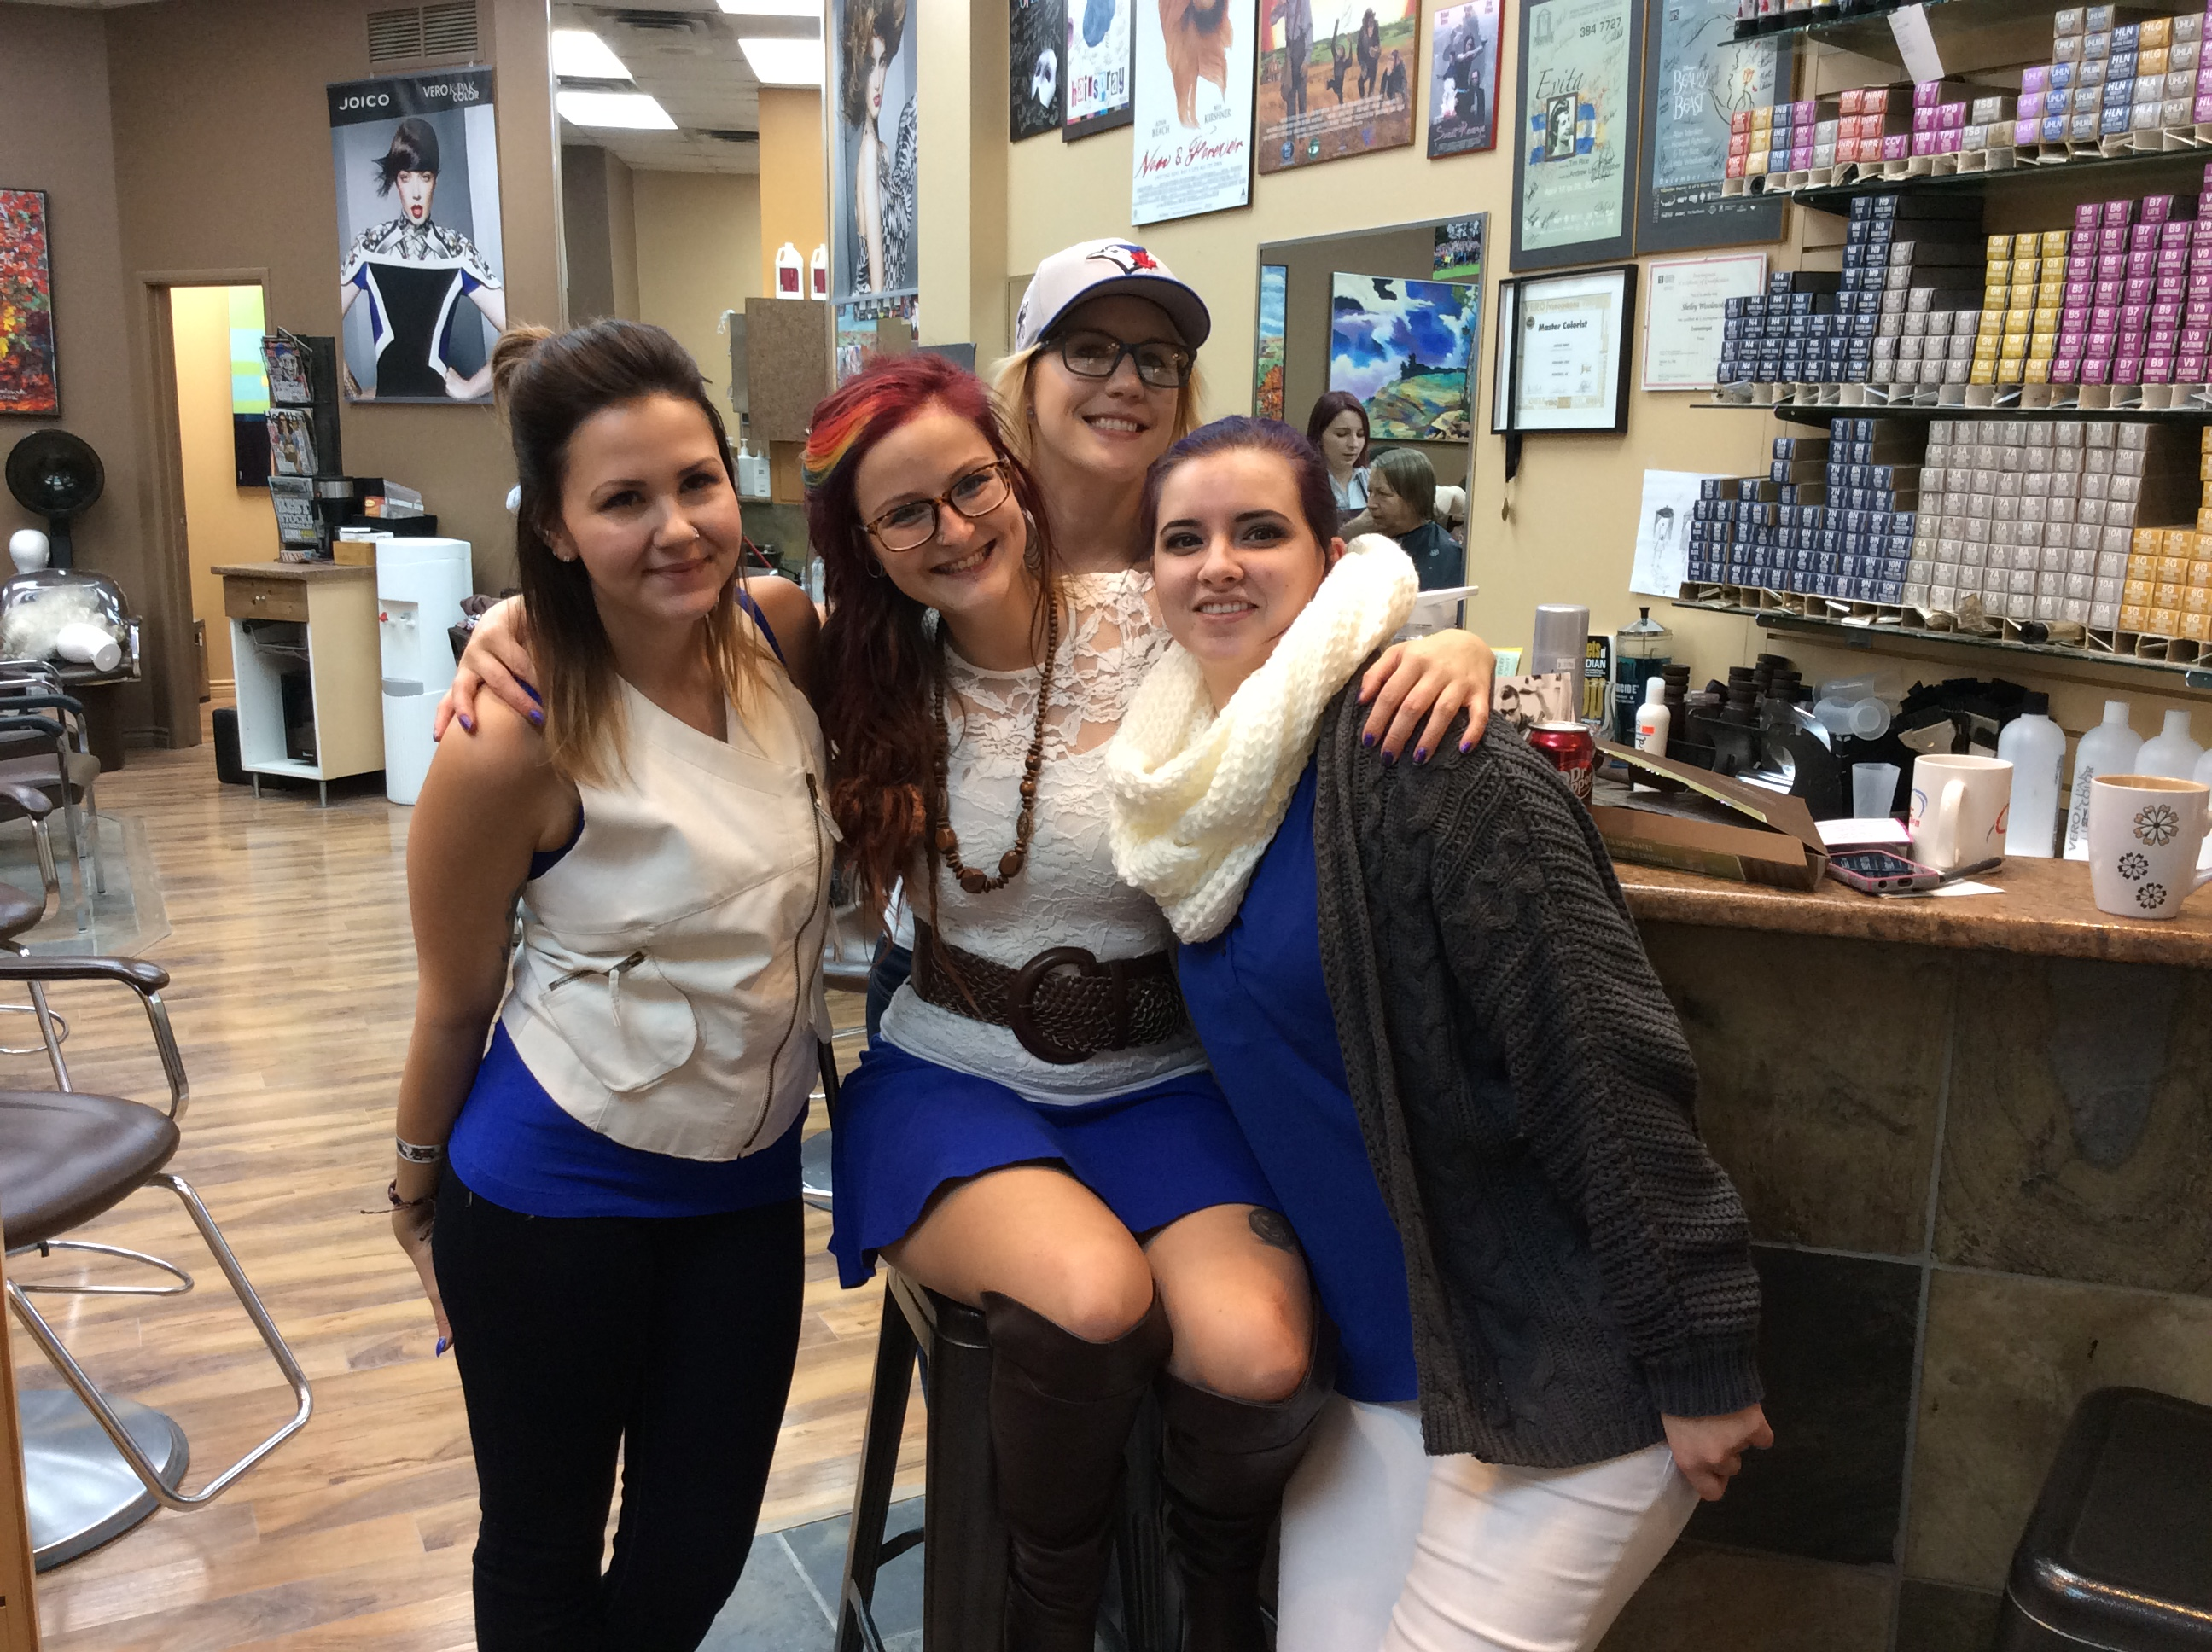 Stylists at Hairstyle Inn dressed in blue and white